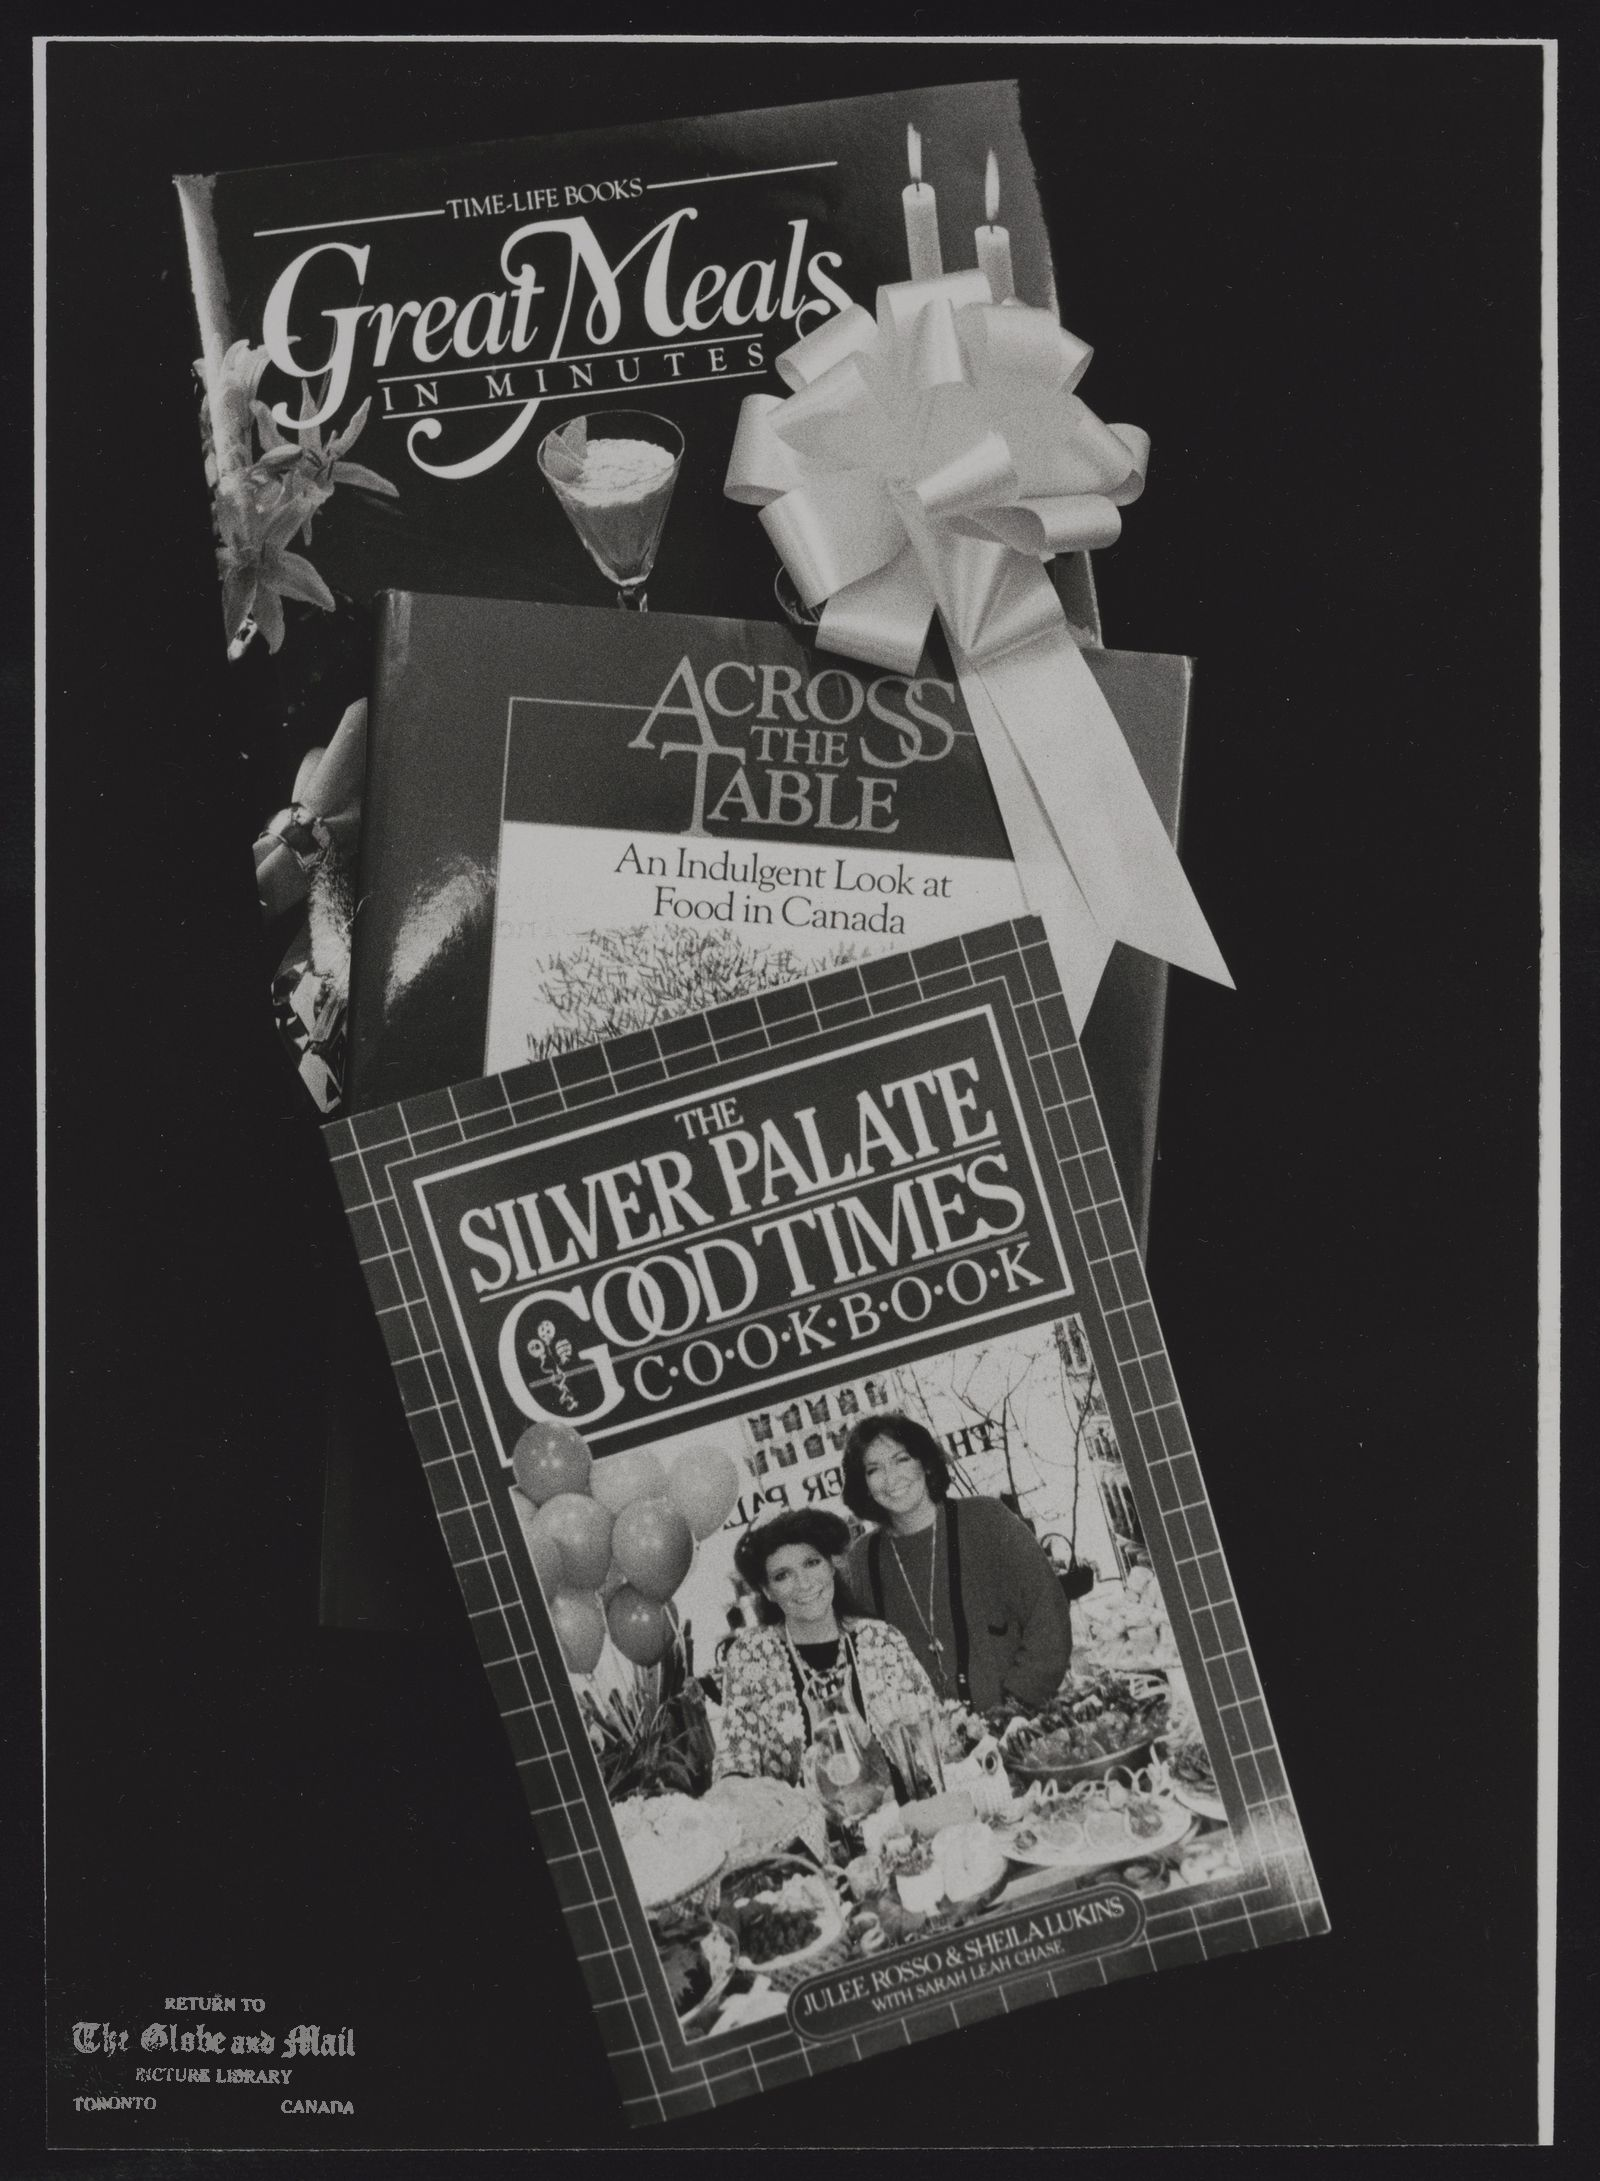 COOKBOOKS Three of the top ten cookbooks for Christmas giving.